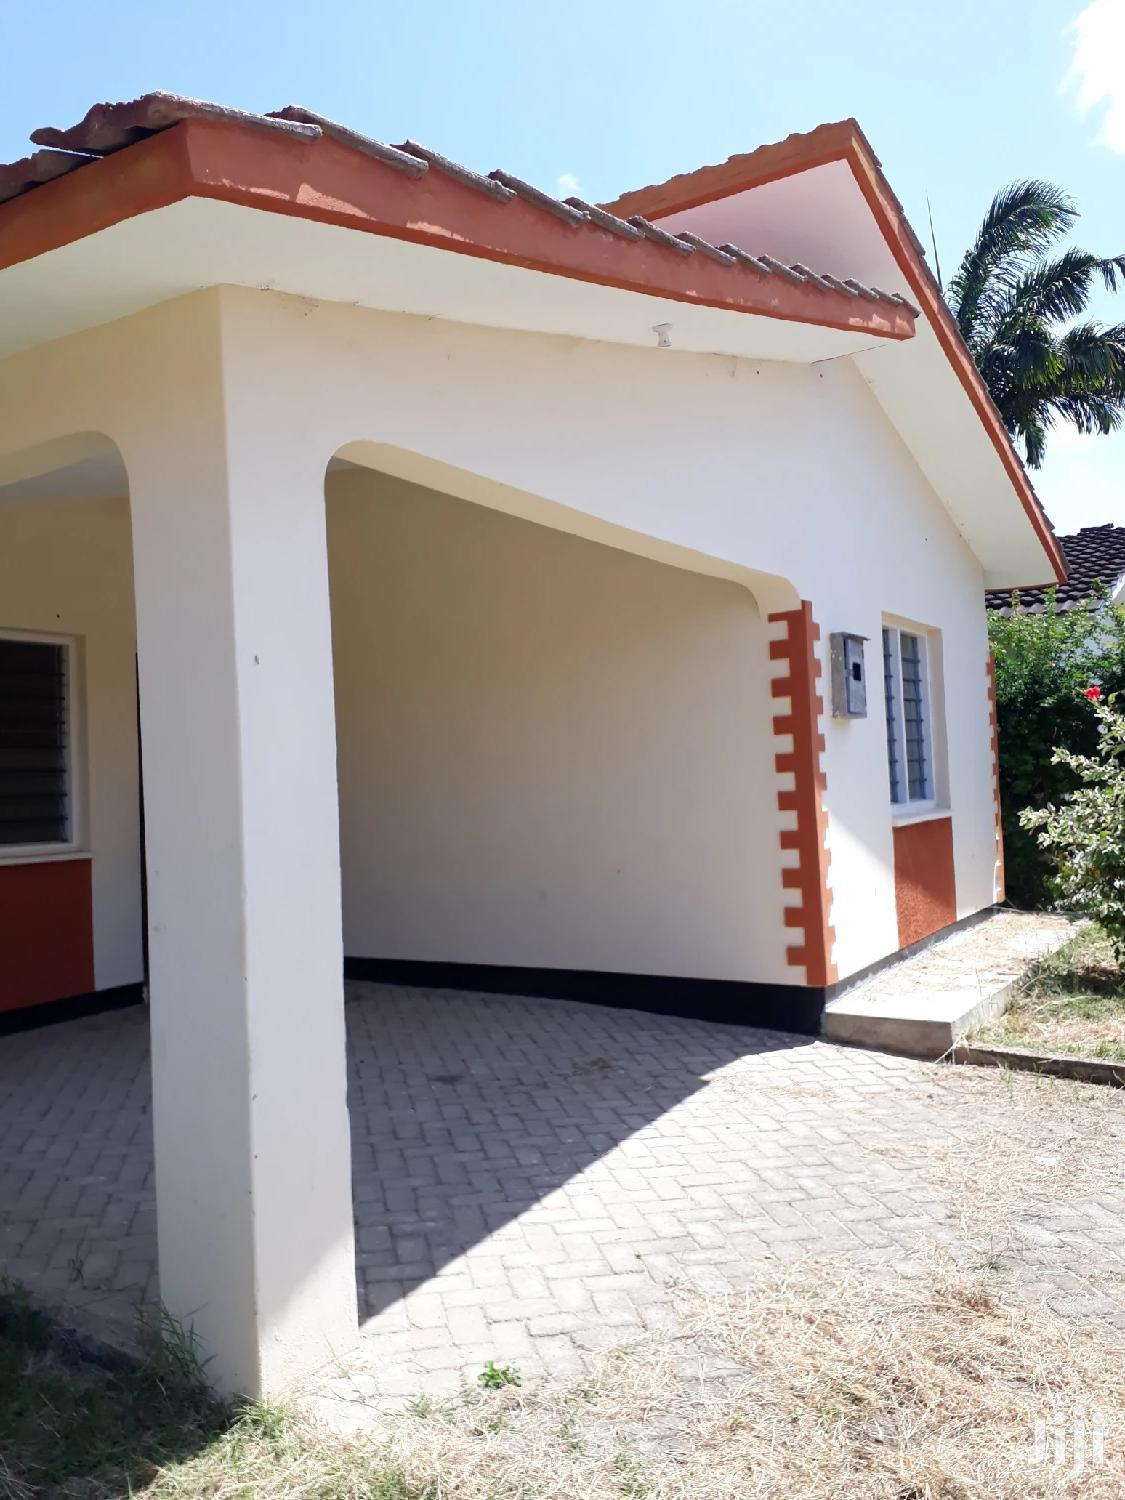 For Sale 3 Bedrooms Bungalow Mtwapa   Houses & Apartments For Sale for sale in Mtwapa, Kilifi, Kenya